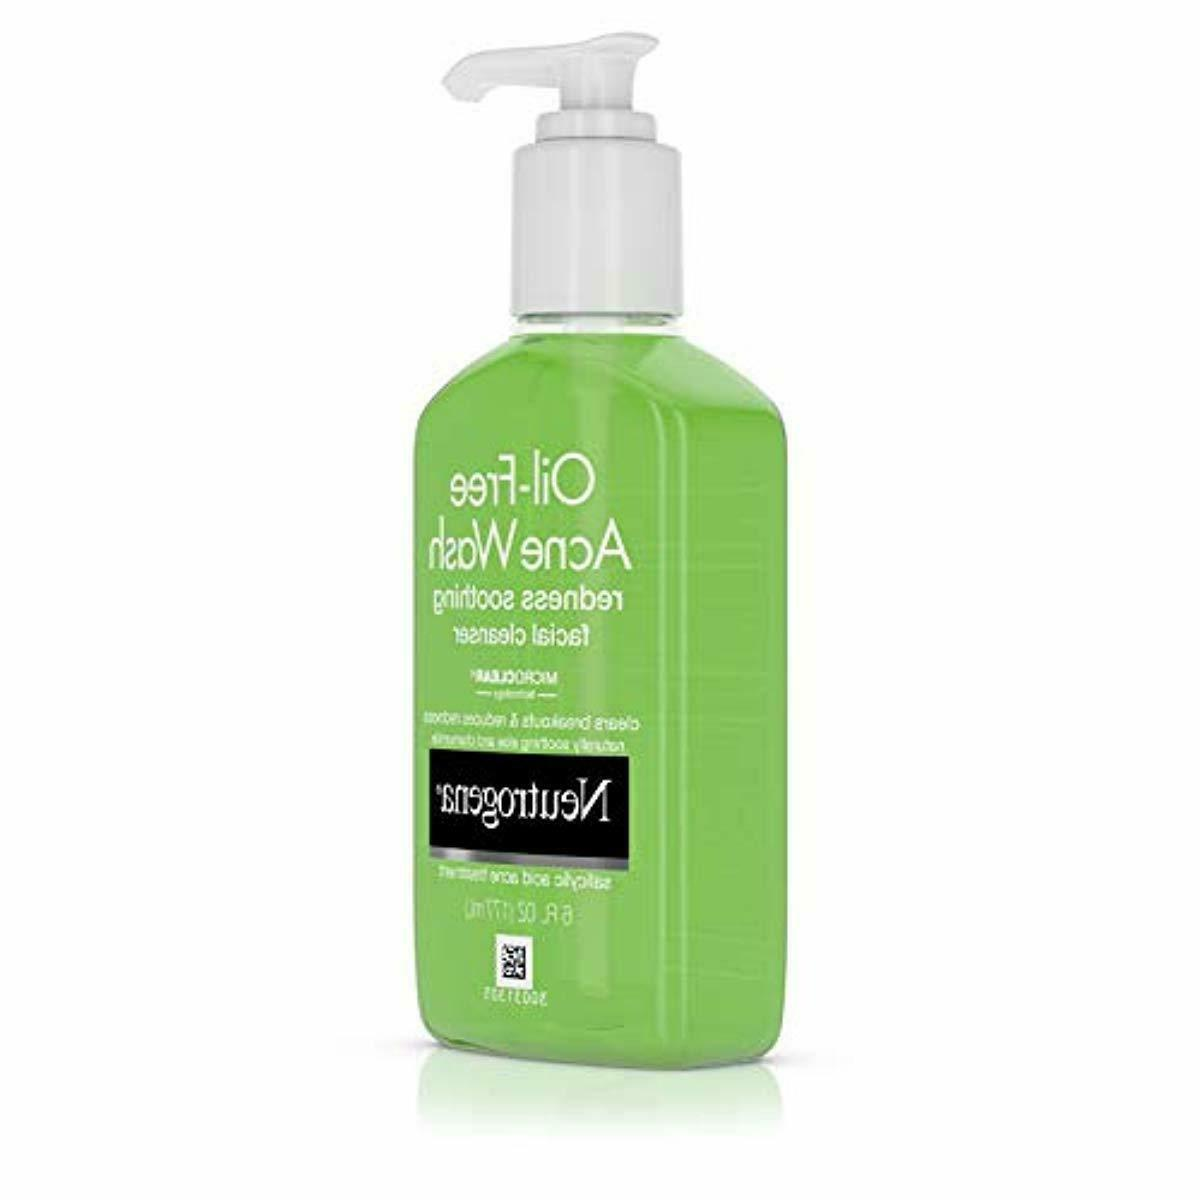 Neutrogena Oil-Free and Redness Face Wash with